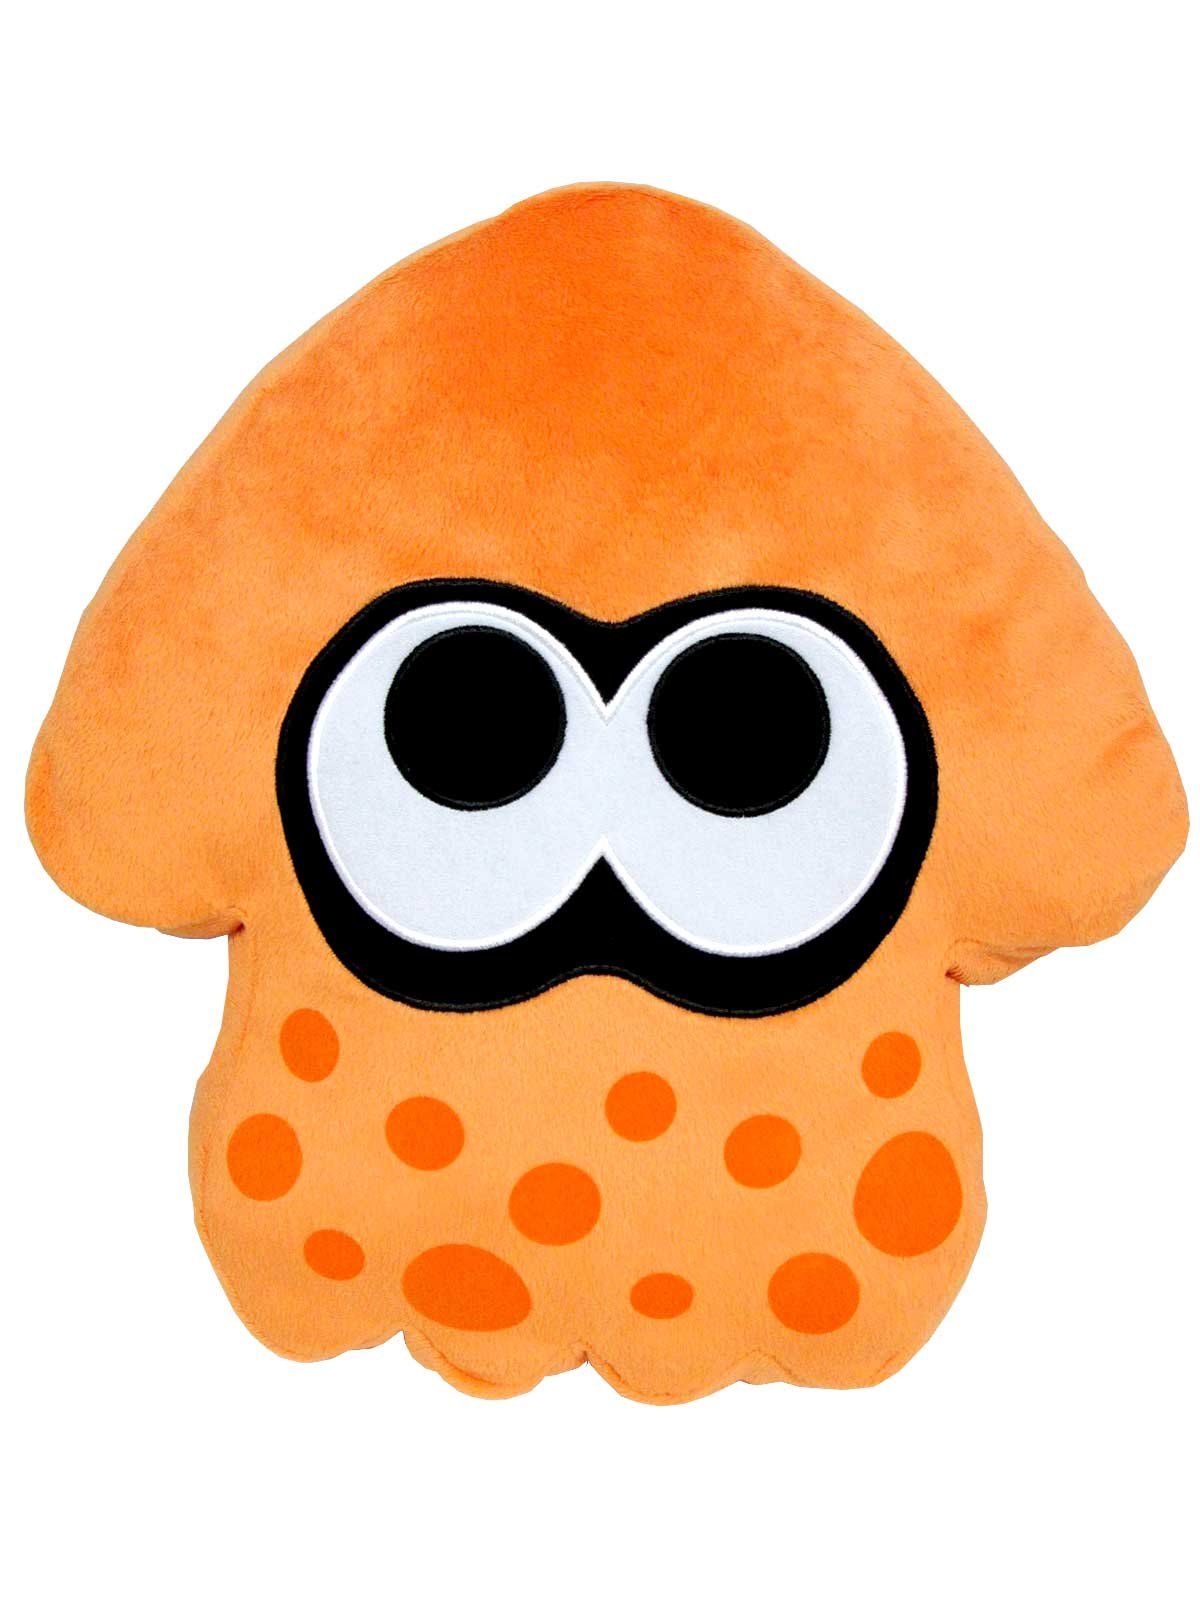 Sanei Splatoon Series Orange Splatoon Squid Cushion 14 inch Plush by Sanei